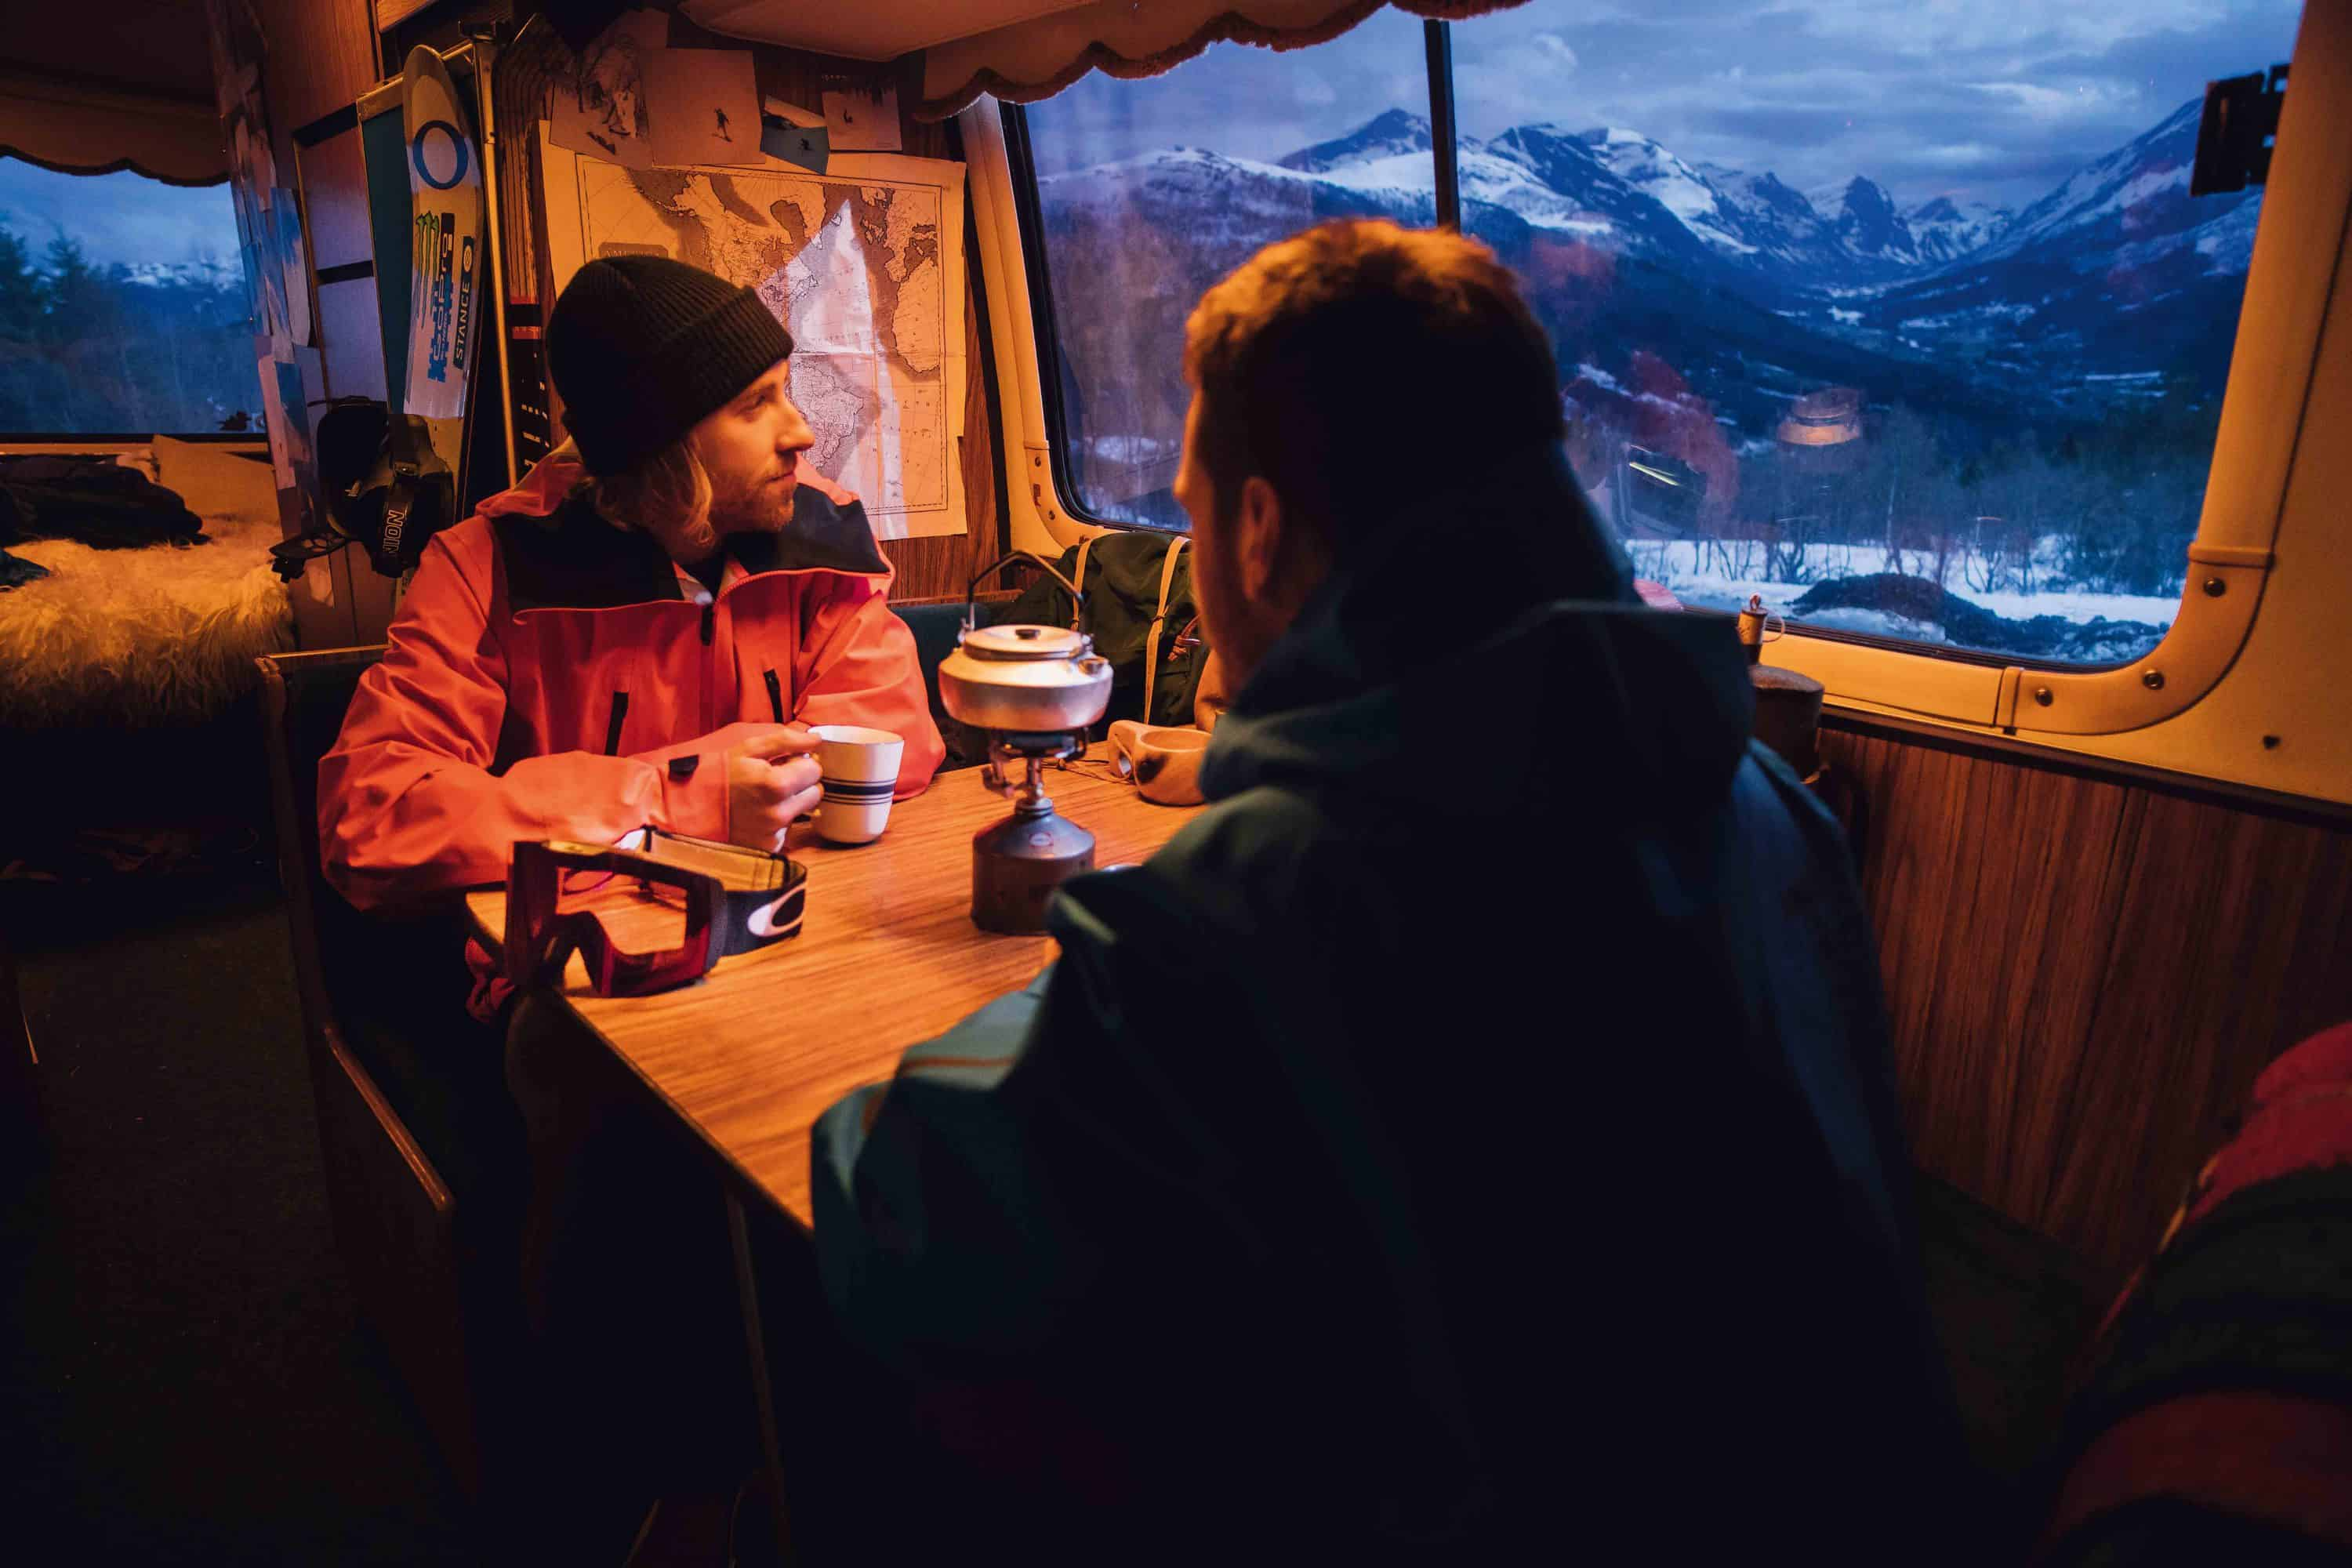 10 Essential & Odd Bits Of Gear For An Overseas Snow Trip